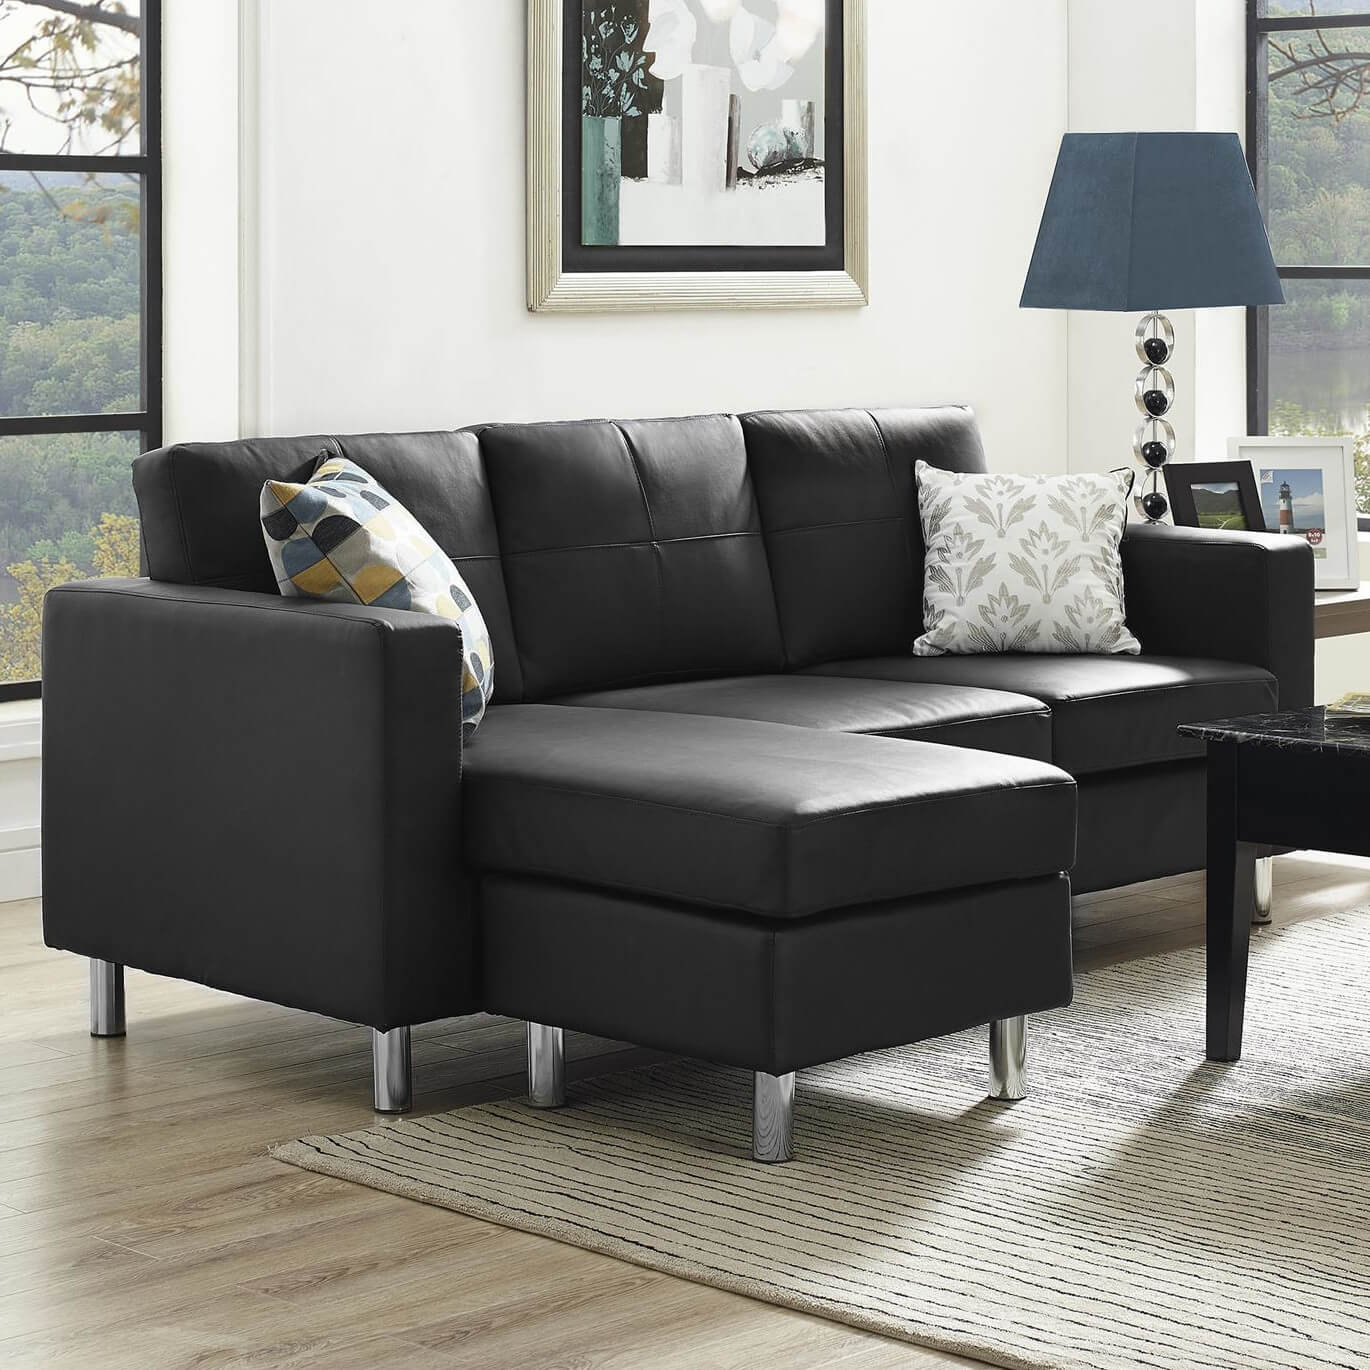 A lovely black sectional with a reversible chaise. The legs are aluminum and the piece is upholstered in a tailored faux leather in black ... : modern sectional chaise - Sectionals, Sofas & Couches